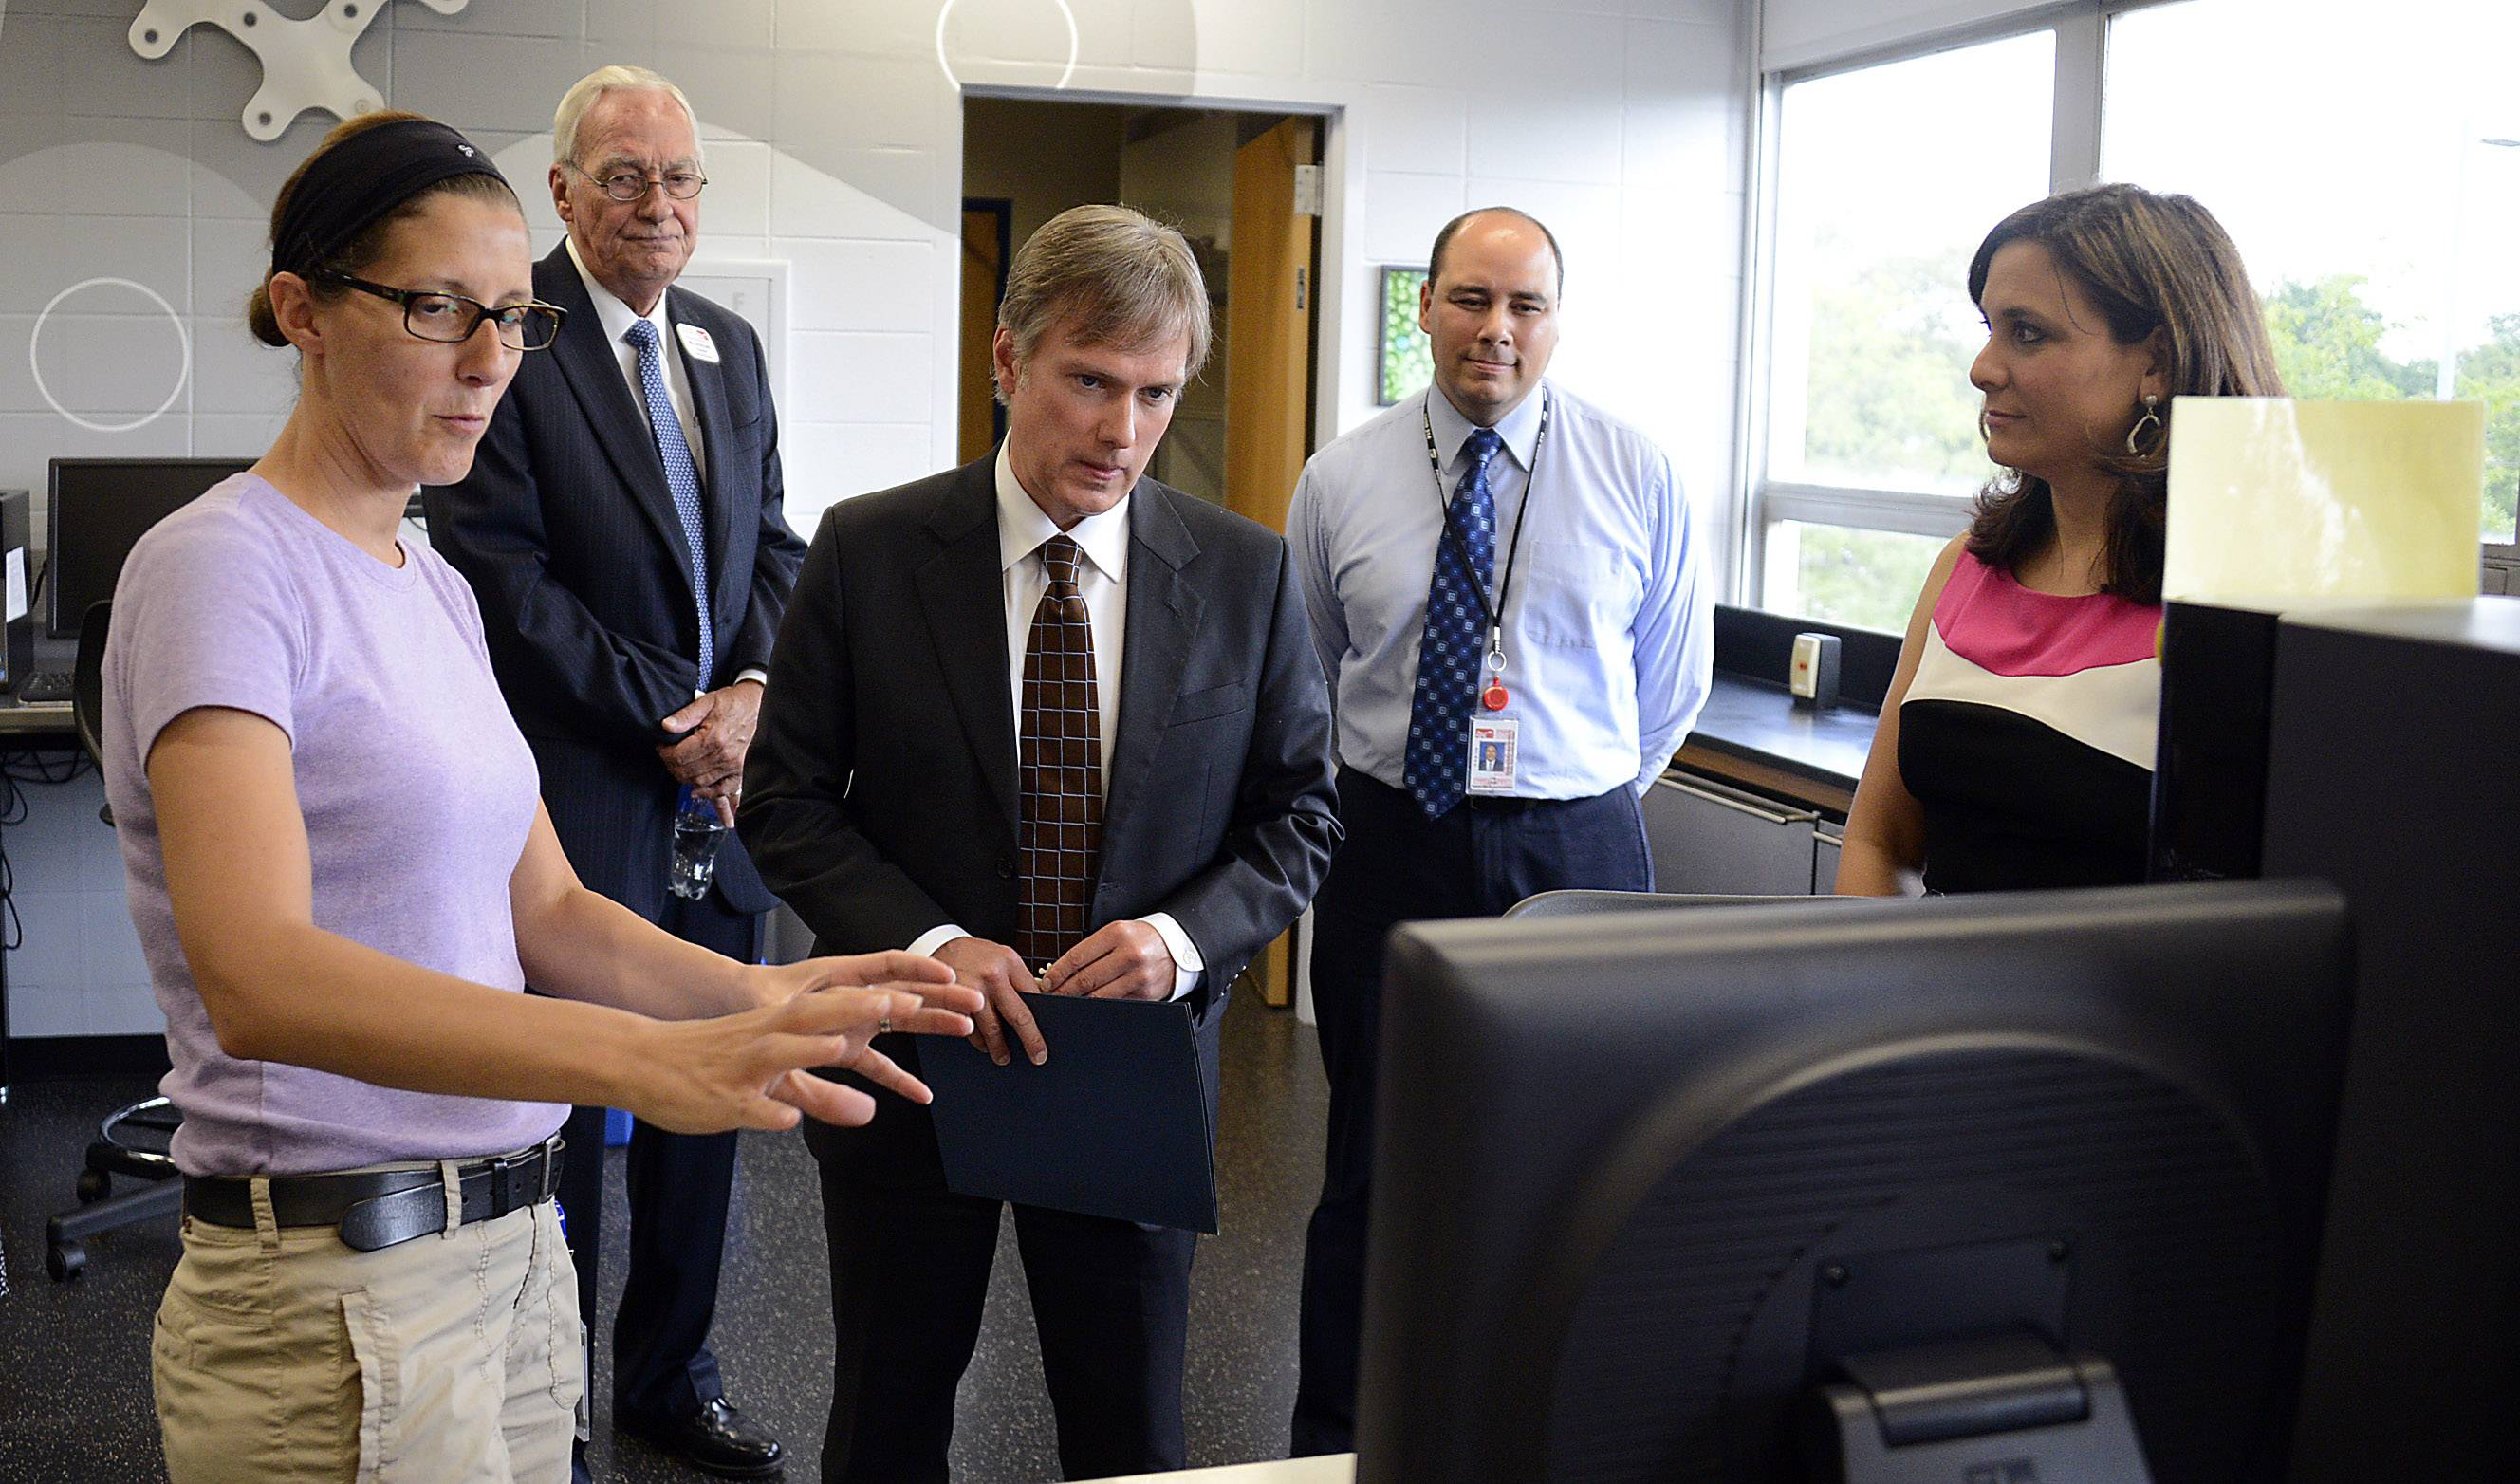 Lisa del Muro, who works in Wheeling High School's nanotechnology department, explains the workings of the lab to Henry Smith, center, with Bill Dussling, president of the District 214 school board, back left; Associate Superintendent Lazaro Lopez (formerly the Wheeling High School principal) and current Principal Angela Sisi.